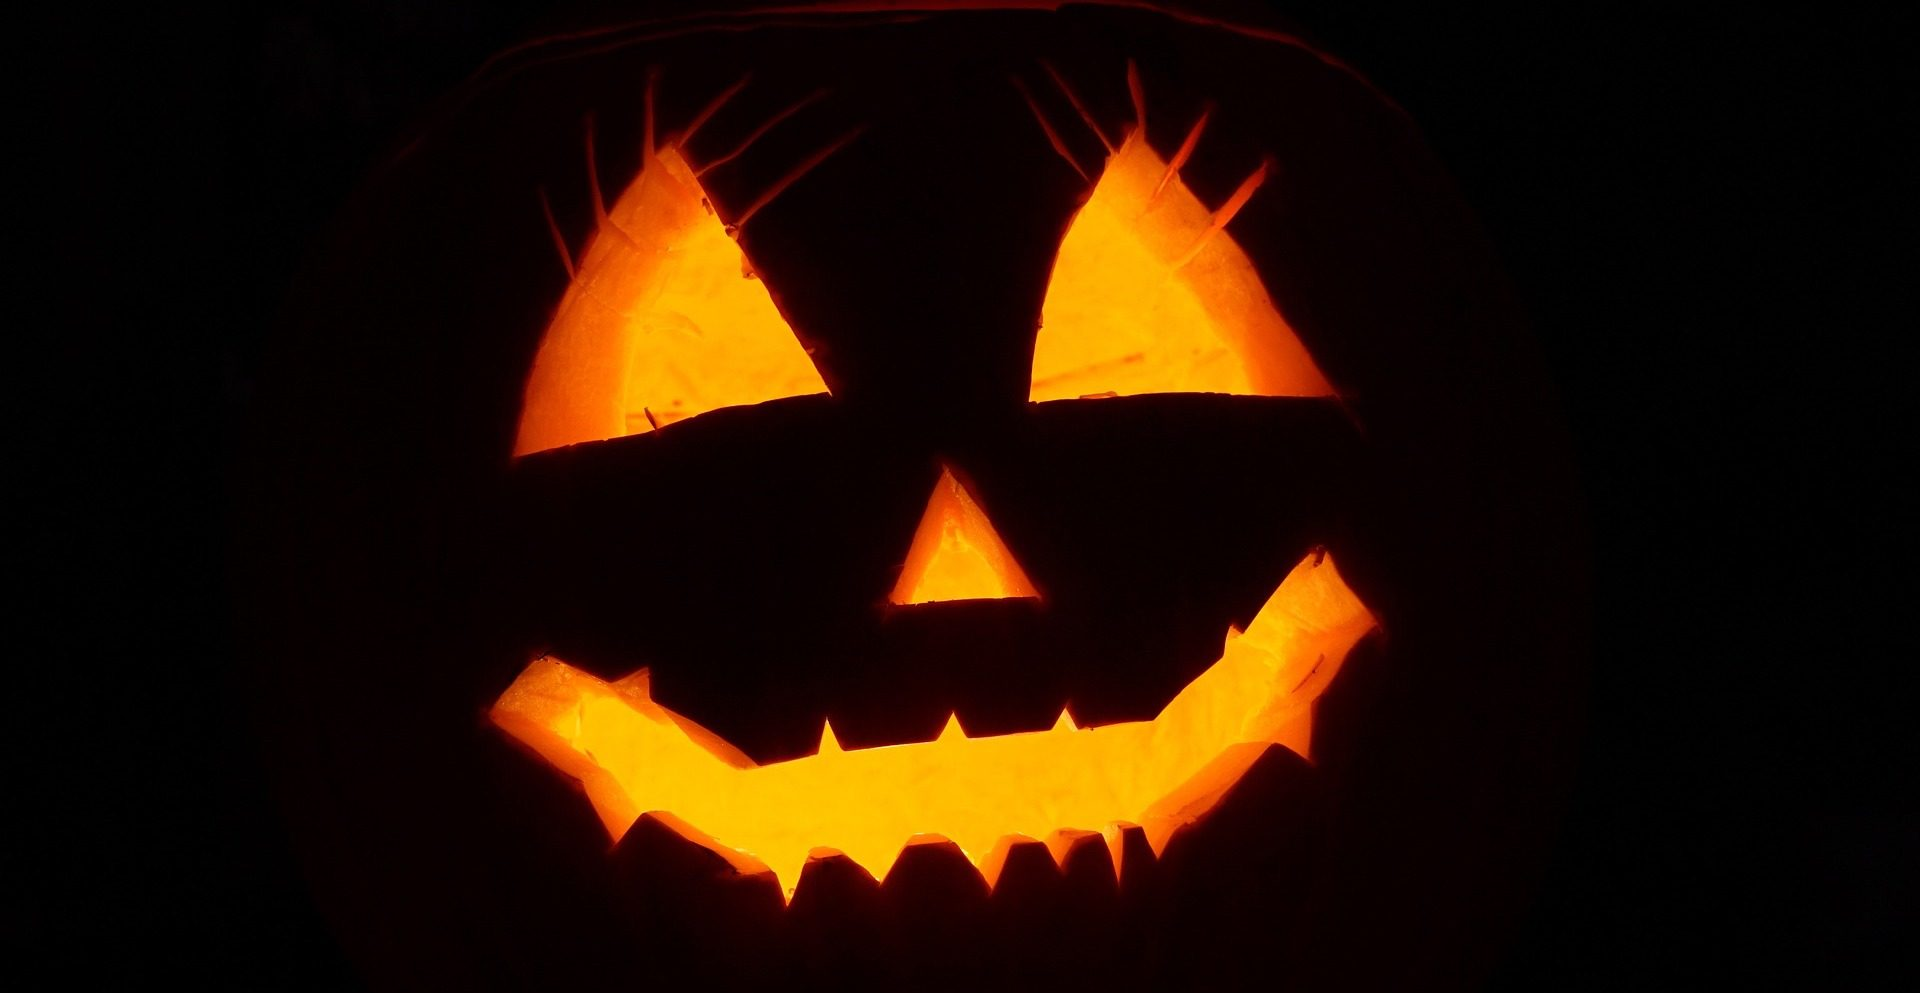 Halloween might not be October 31st in the future [watch]